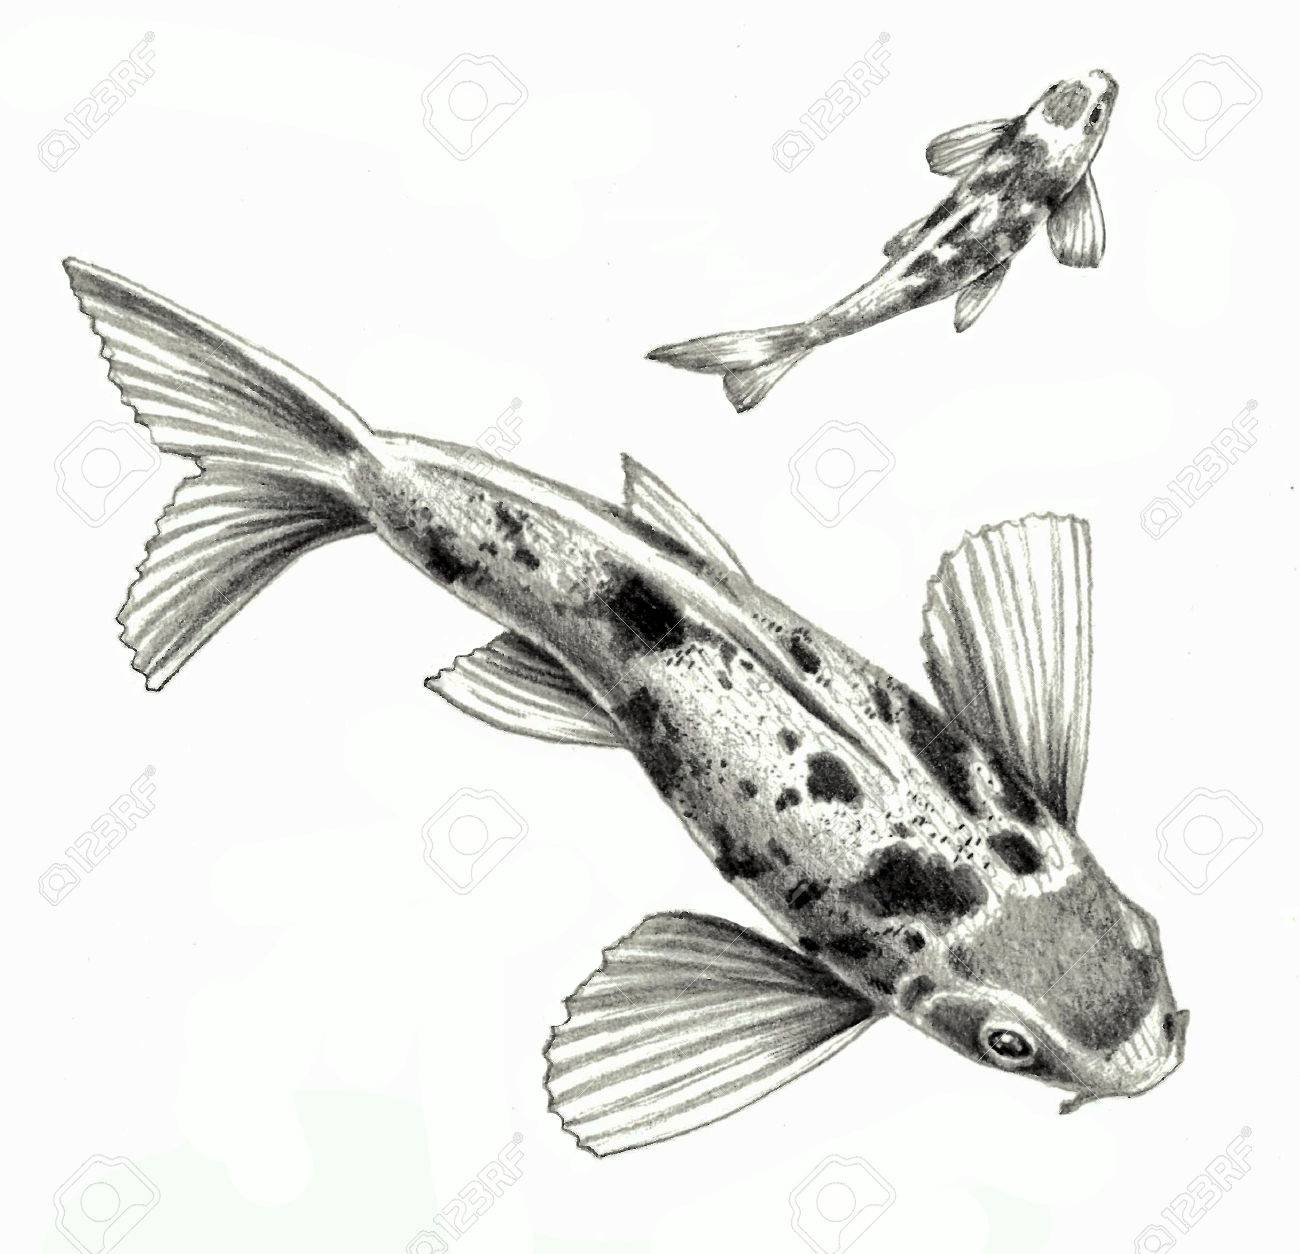 Japanese koi fish isolated on a white background detailed pencil